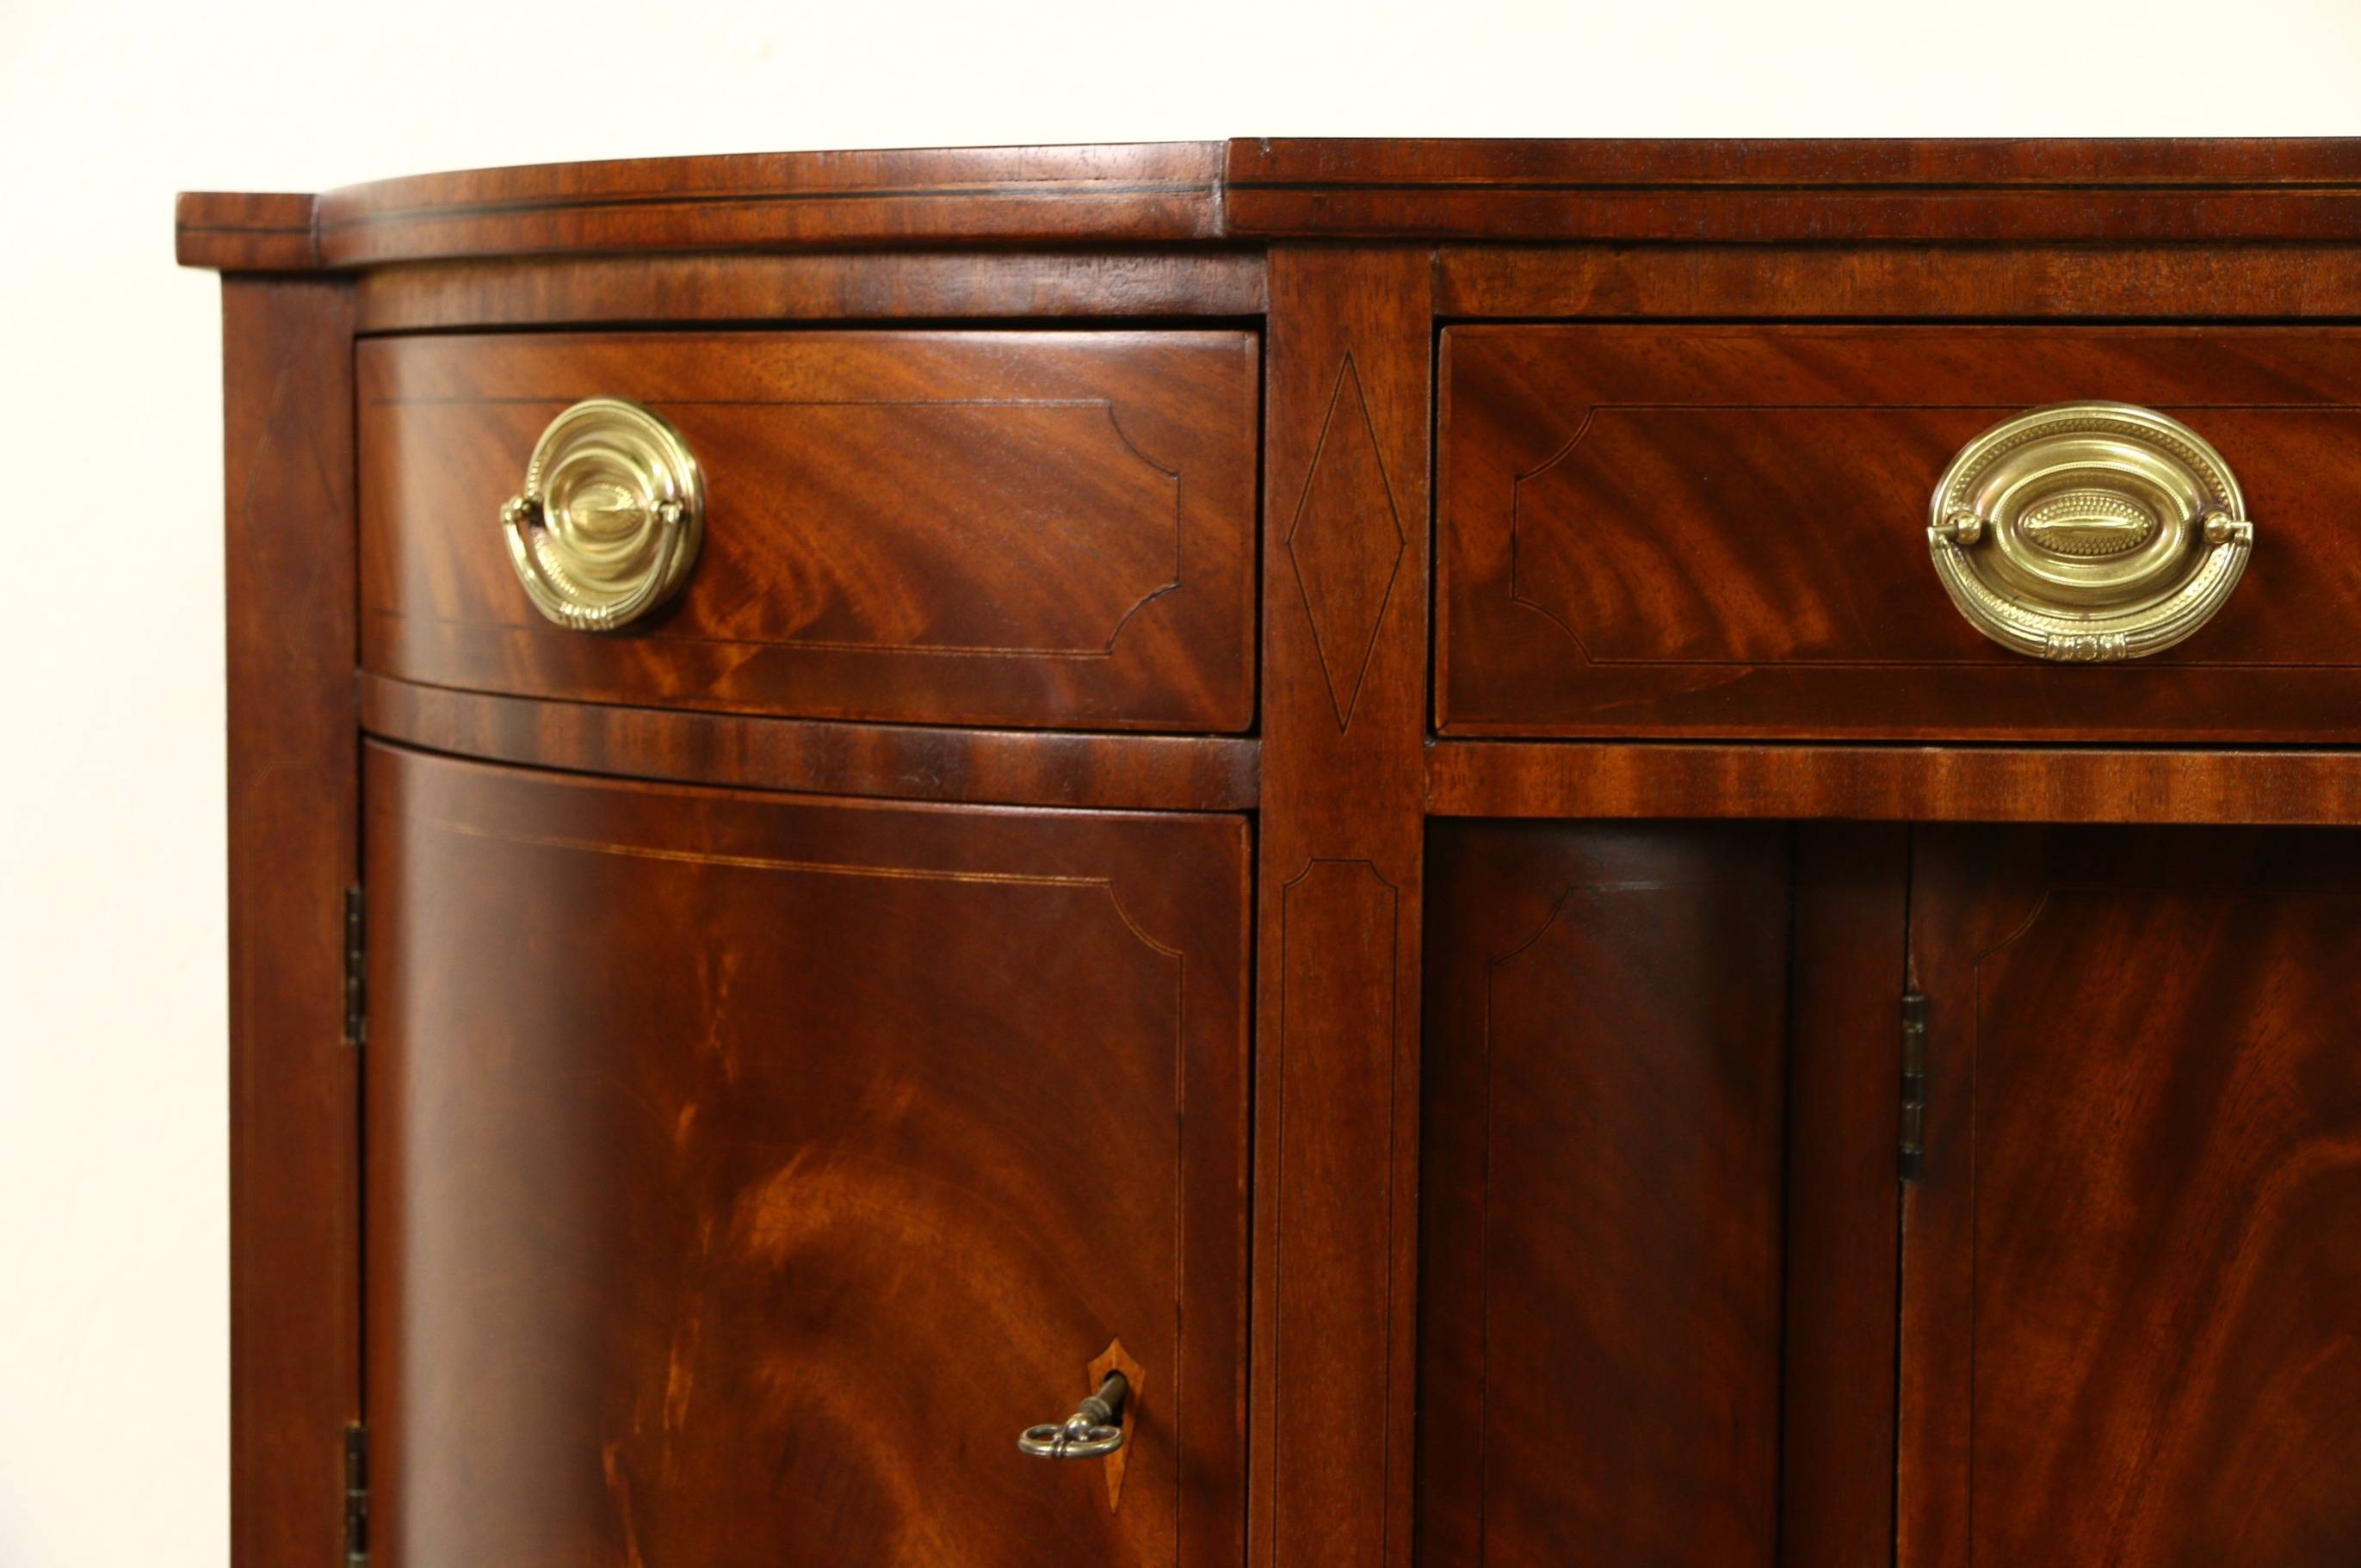 Sold - Henredon Natchez Collection Vintage Mahogany Sideboard inside Antique Sideboards And Buffets (Image 14 of 15)